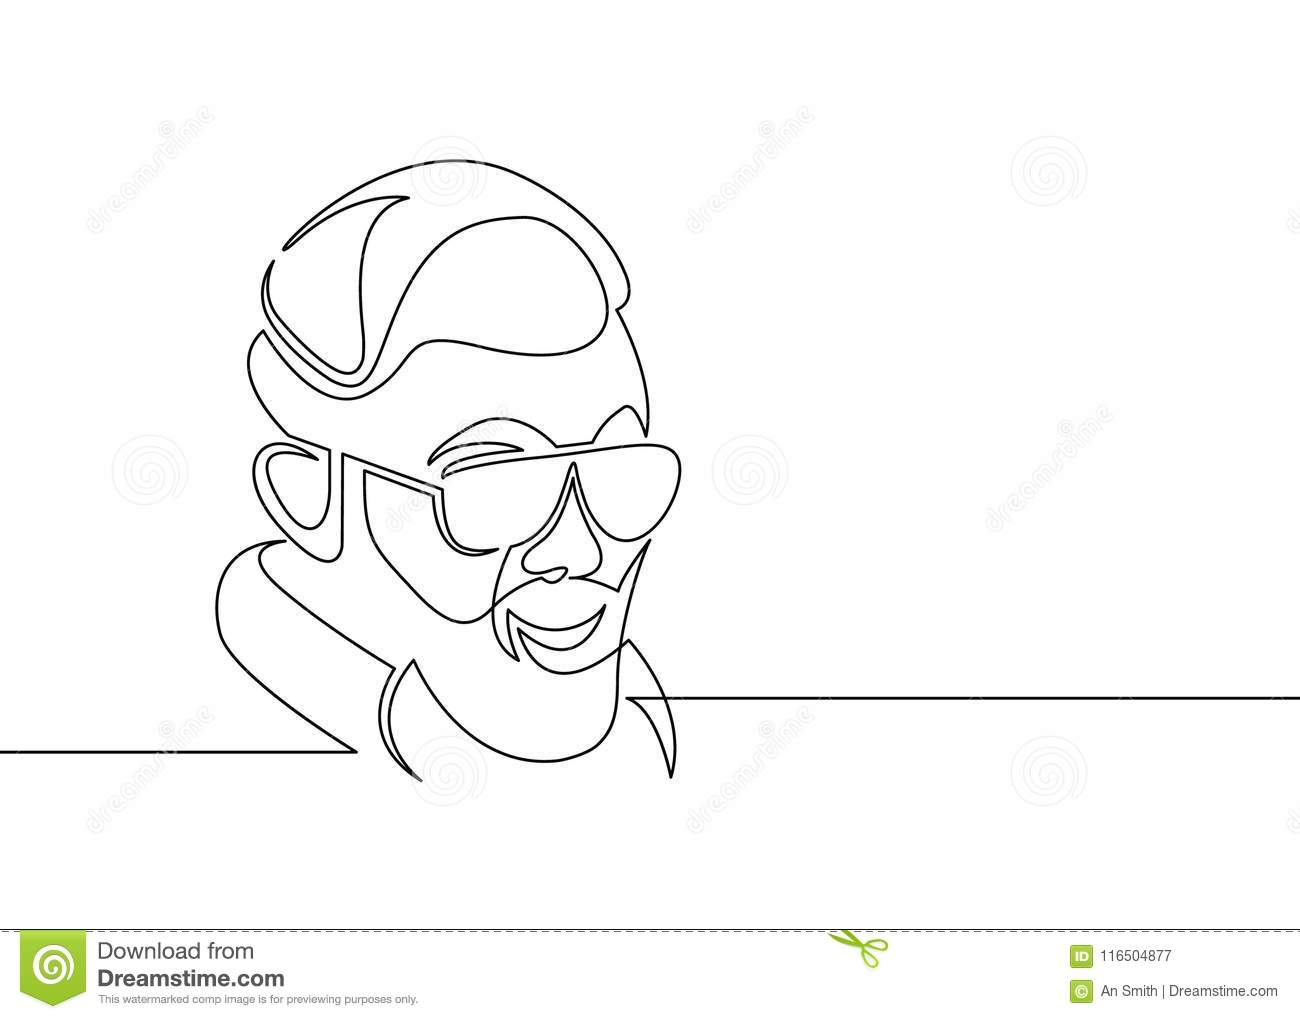 One Line Draw Hipster Stock Vector Illustration Of Glasses 116504877